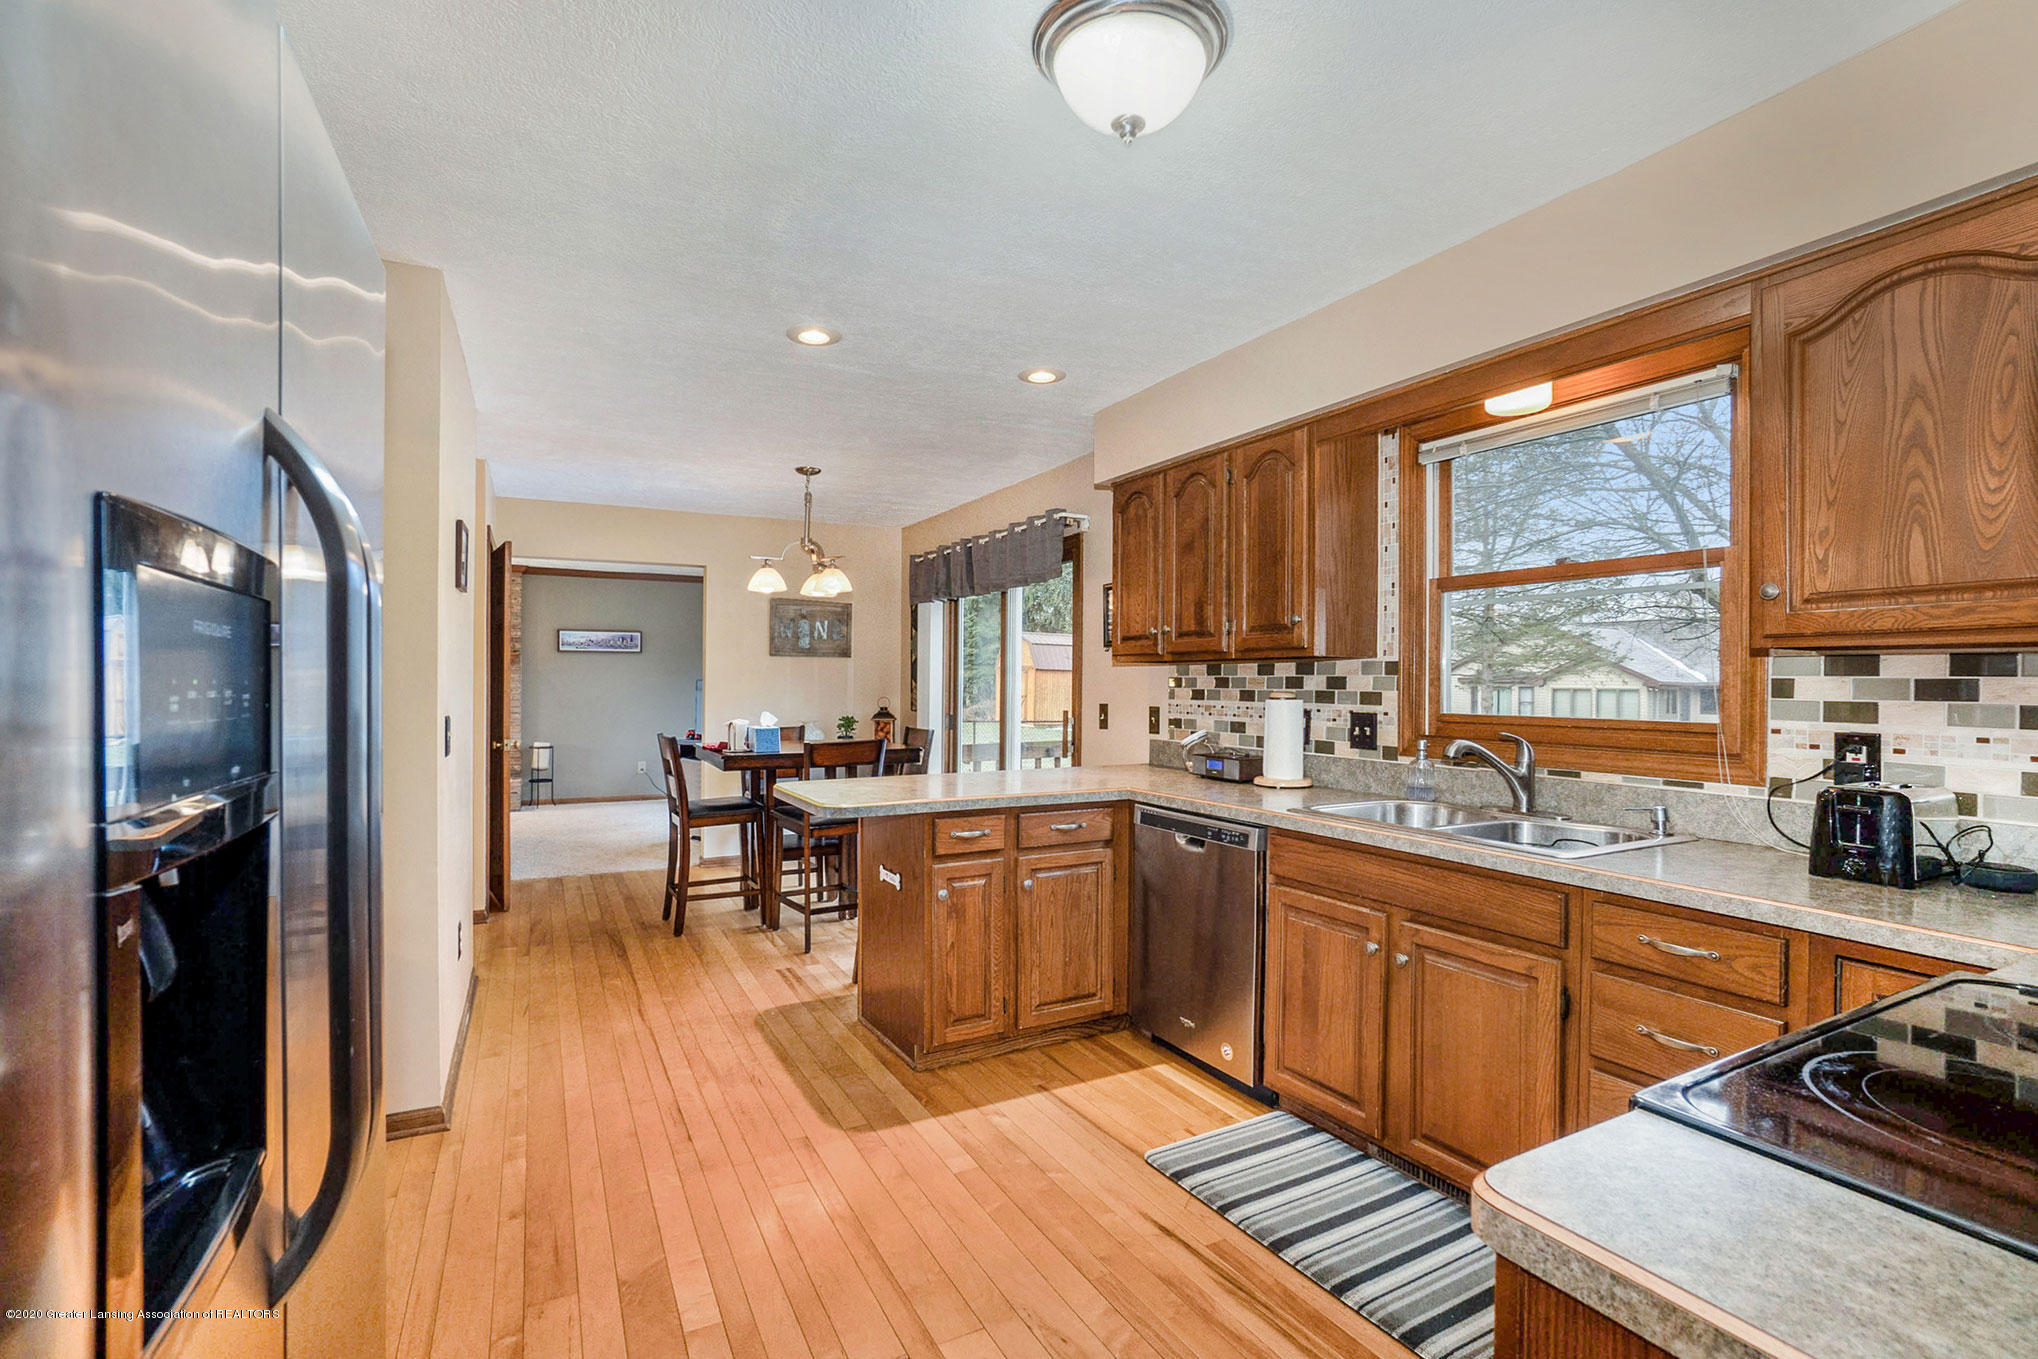 5897 Buttonwood Dr - 15 - 15